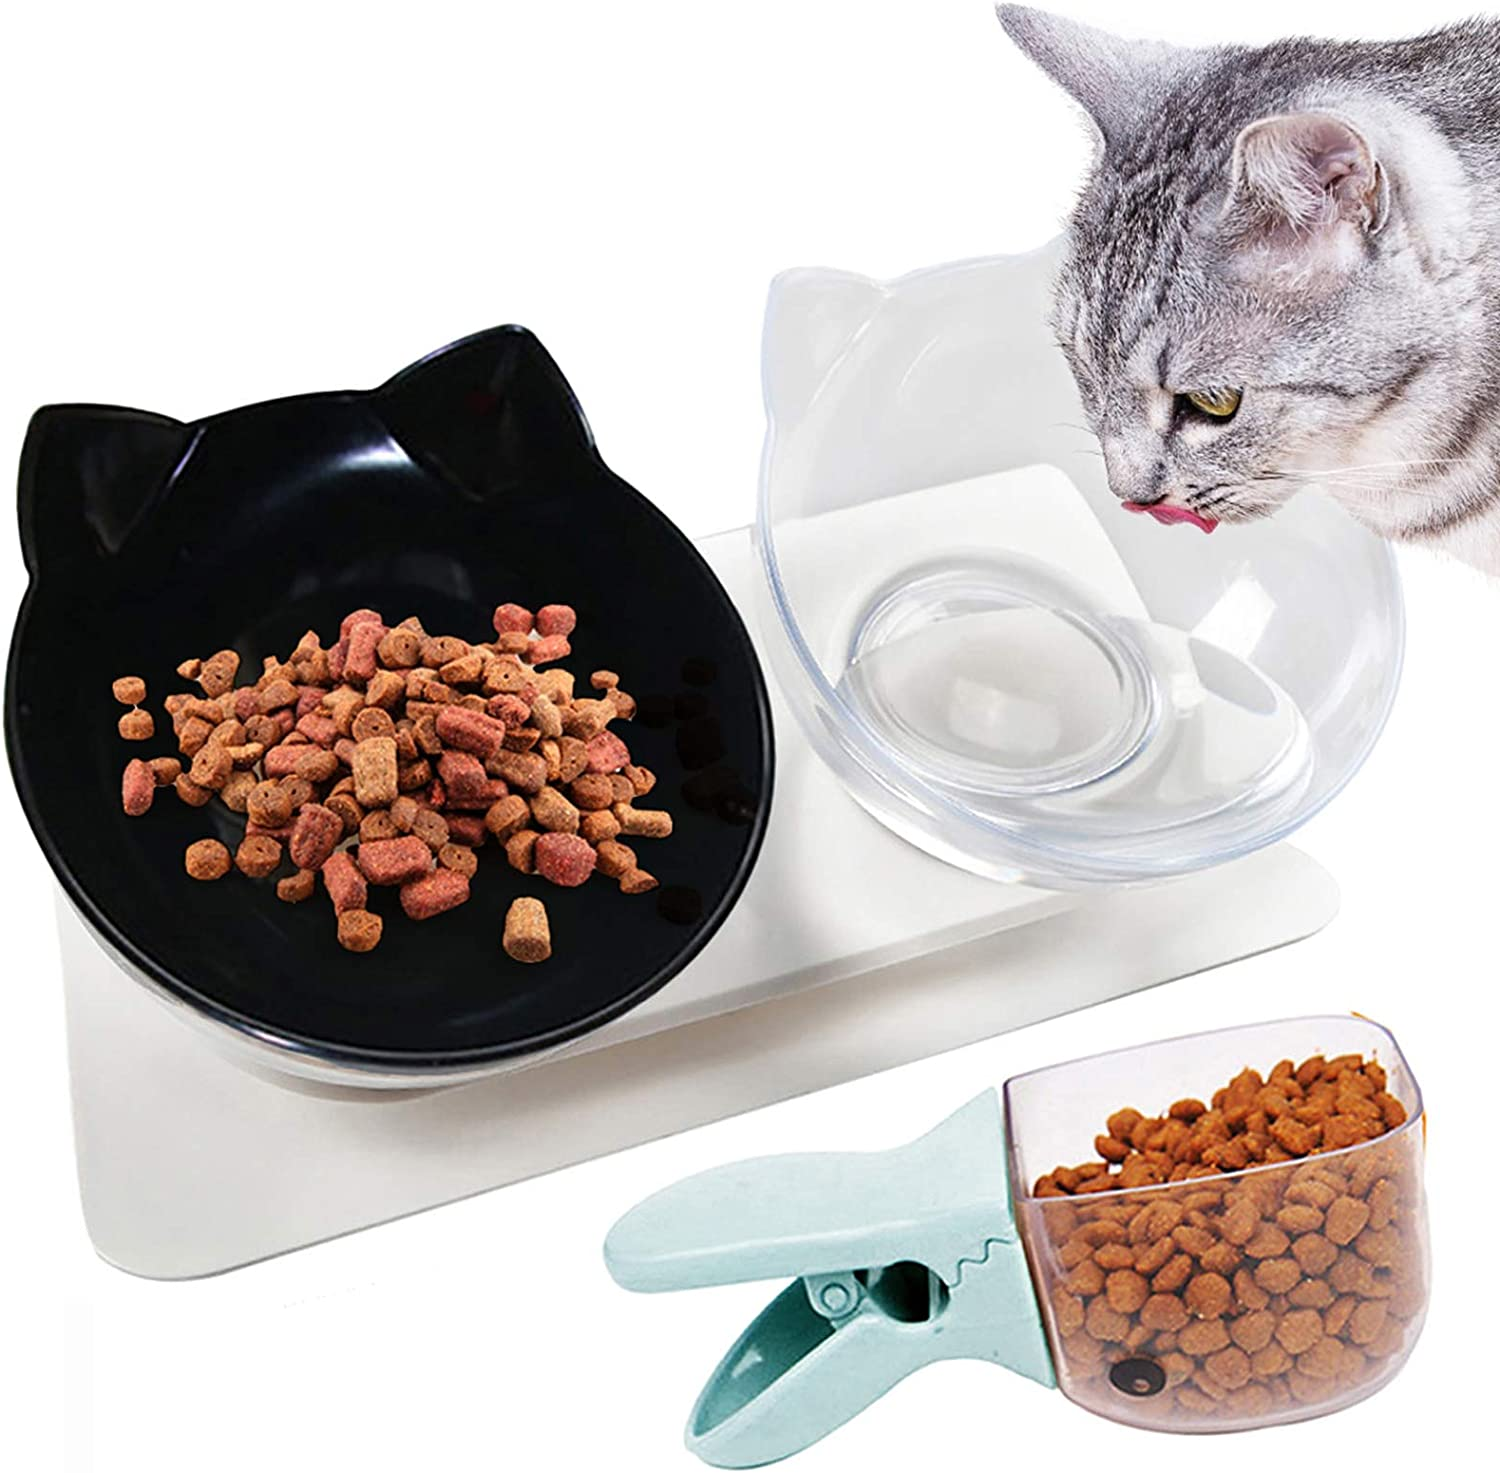 Legendog Cat Bowls,15°Tilted Cat Food Bowl Double Cat Dishes, Cat Feeder Cat Feeding Bowl Raised with Stand, Cat Food Water Bowl for Cats and Small Dog